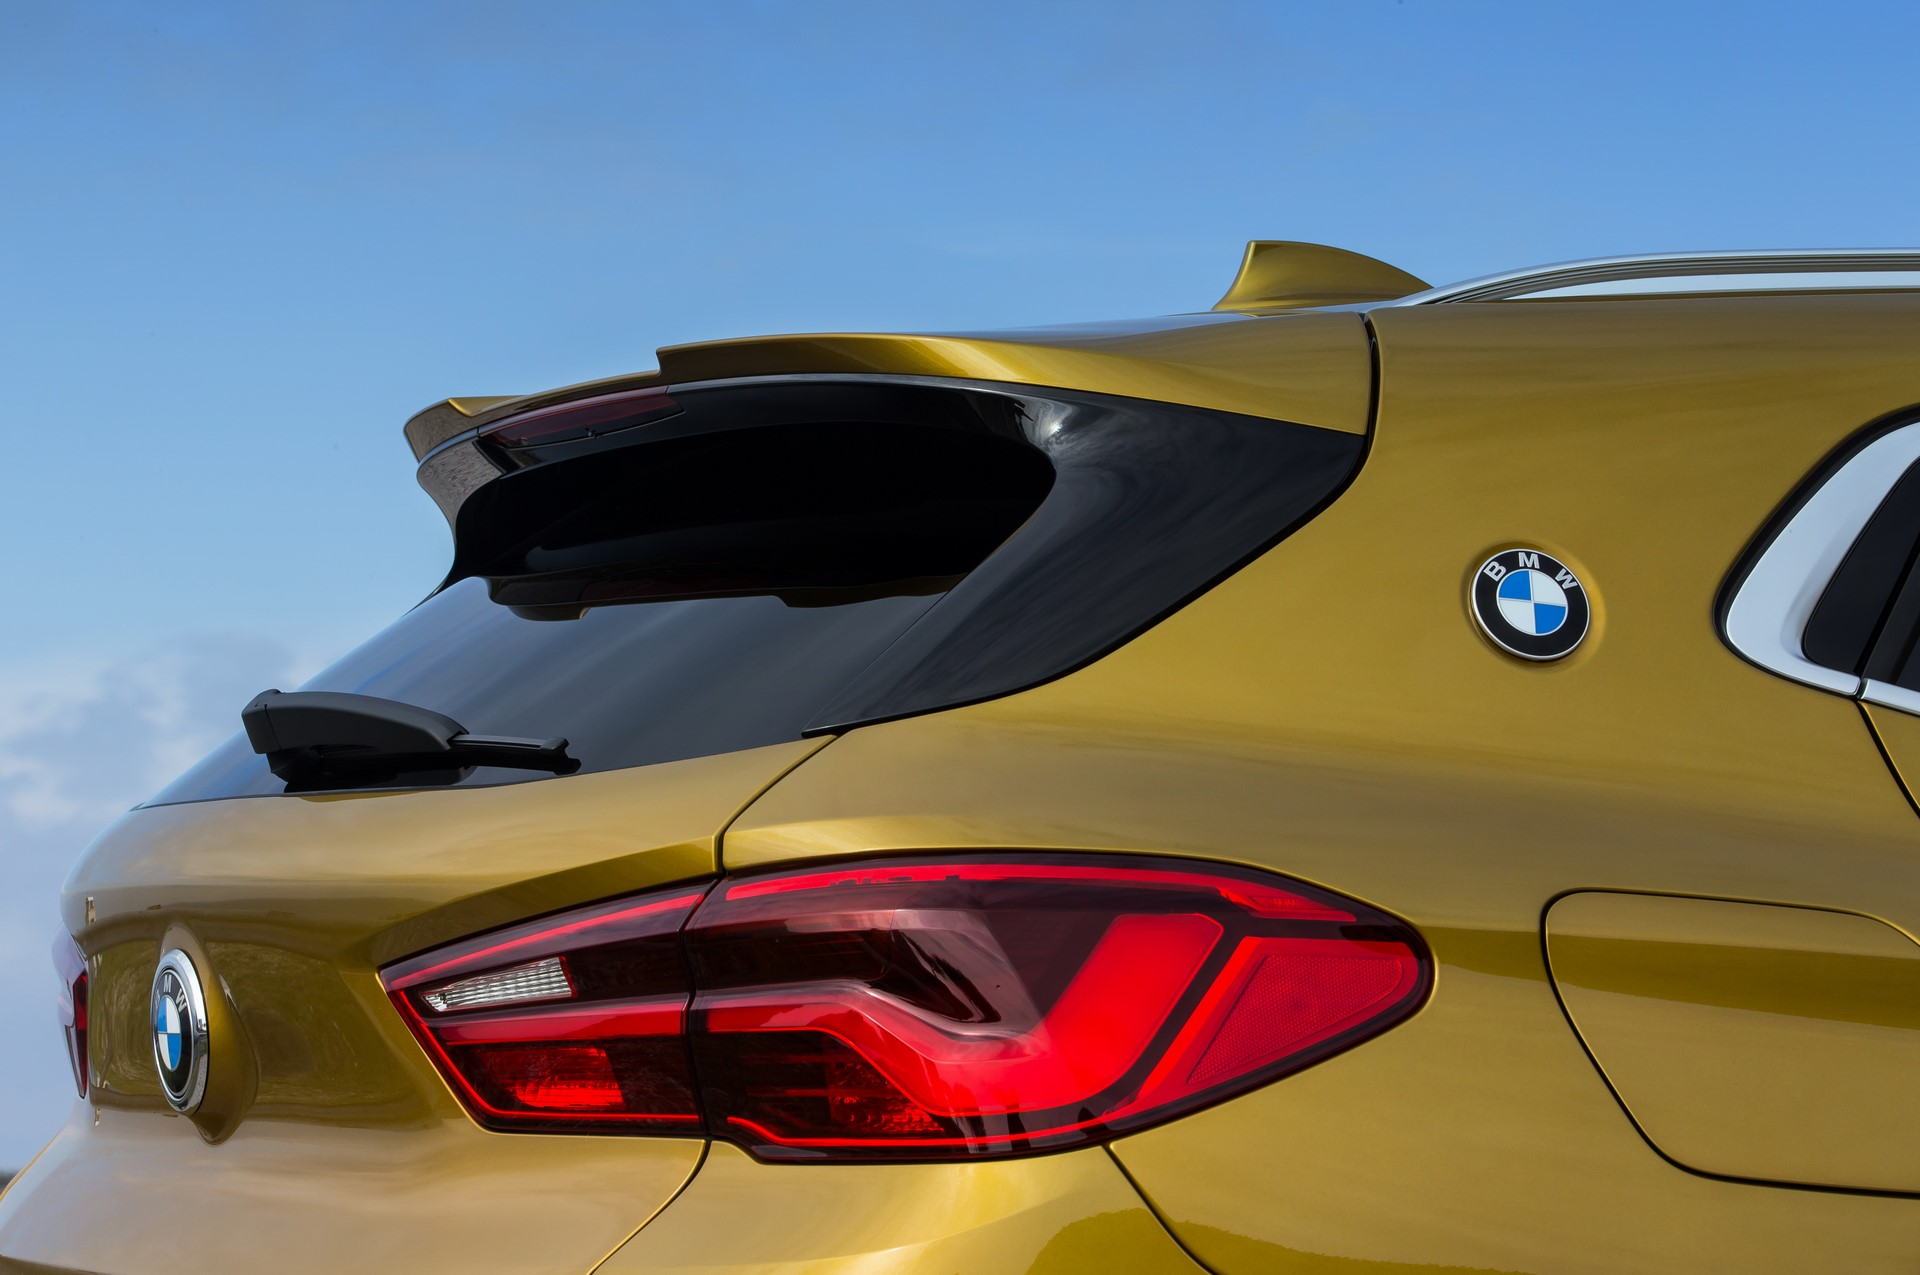 BMW X2 Greek 2018 (12)